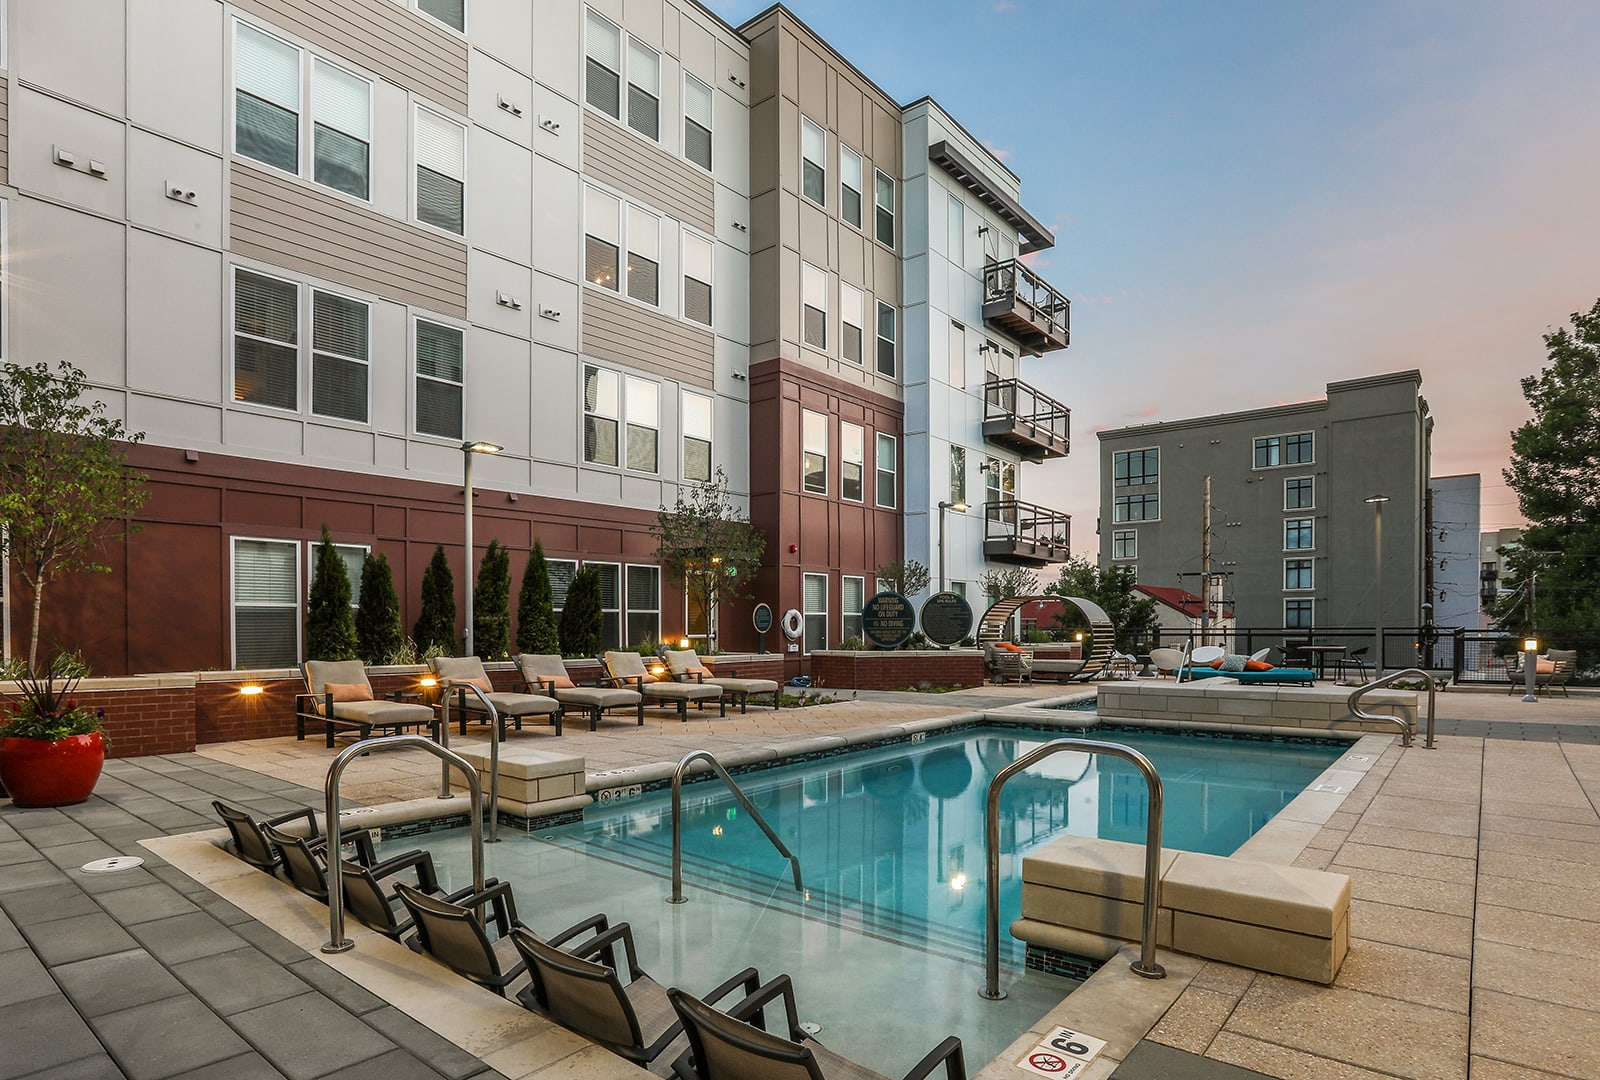 Swimming Pool With Relaxing Sundecks at Centric LoHi by Windsor, Colorado, 80211